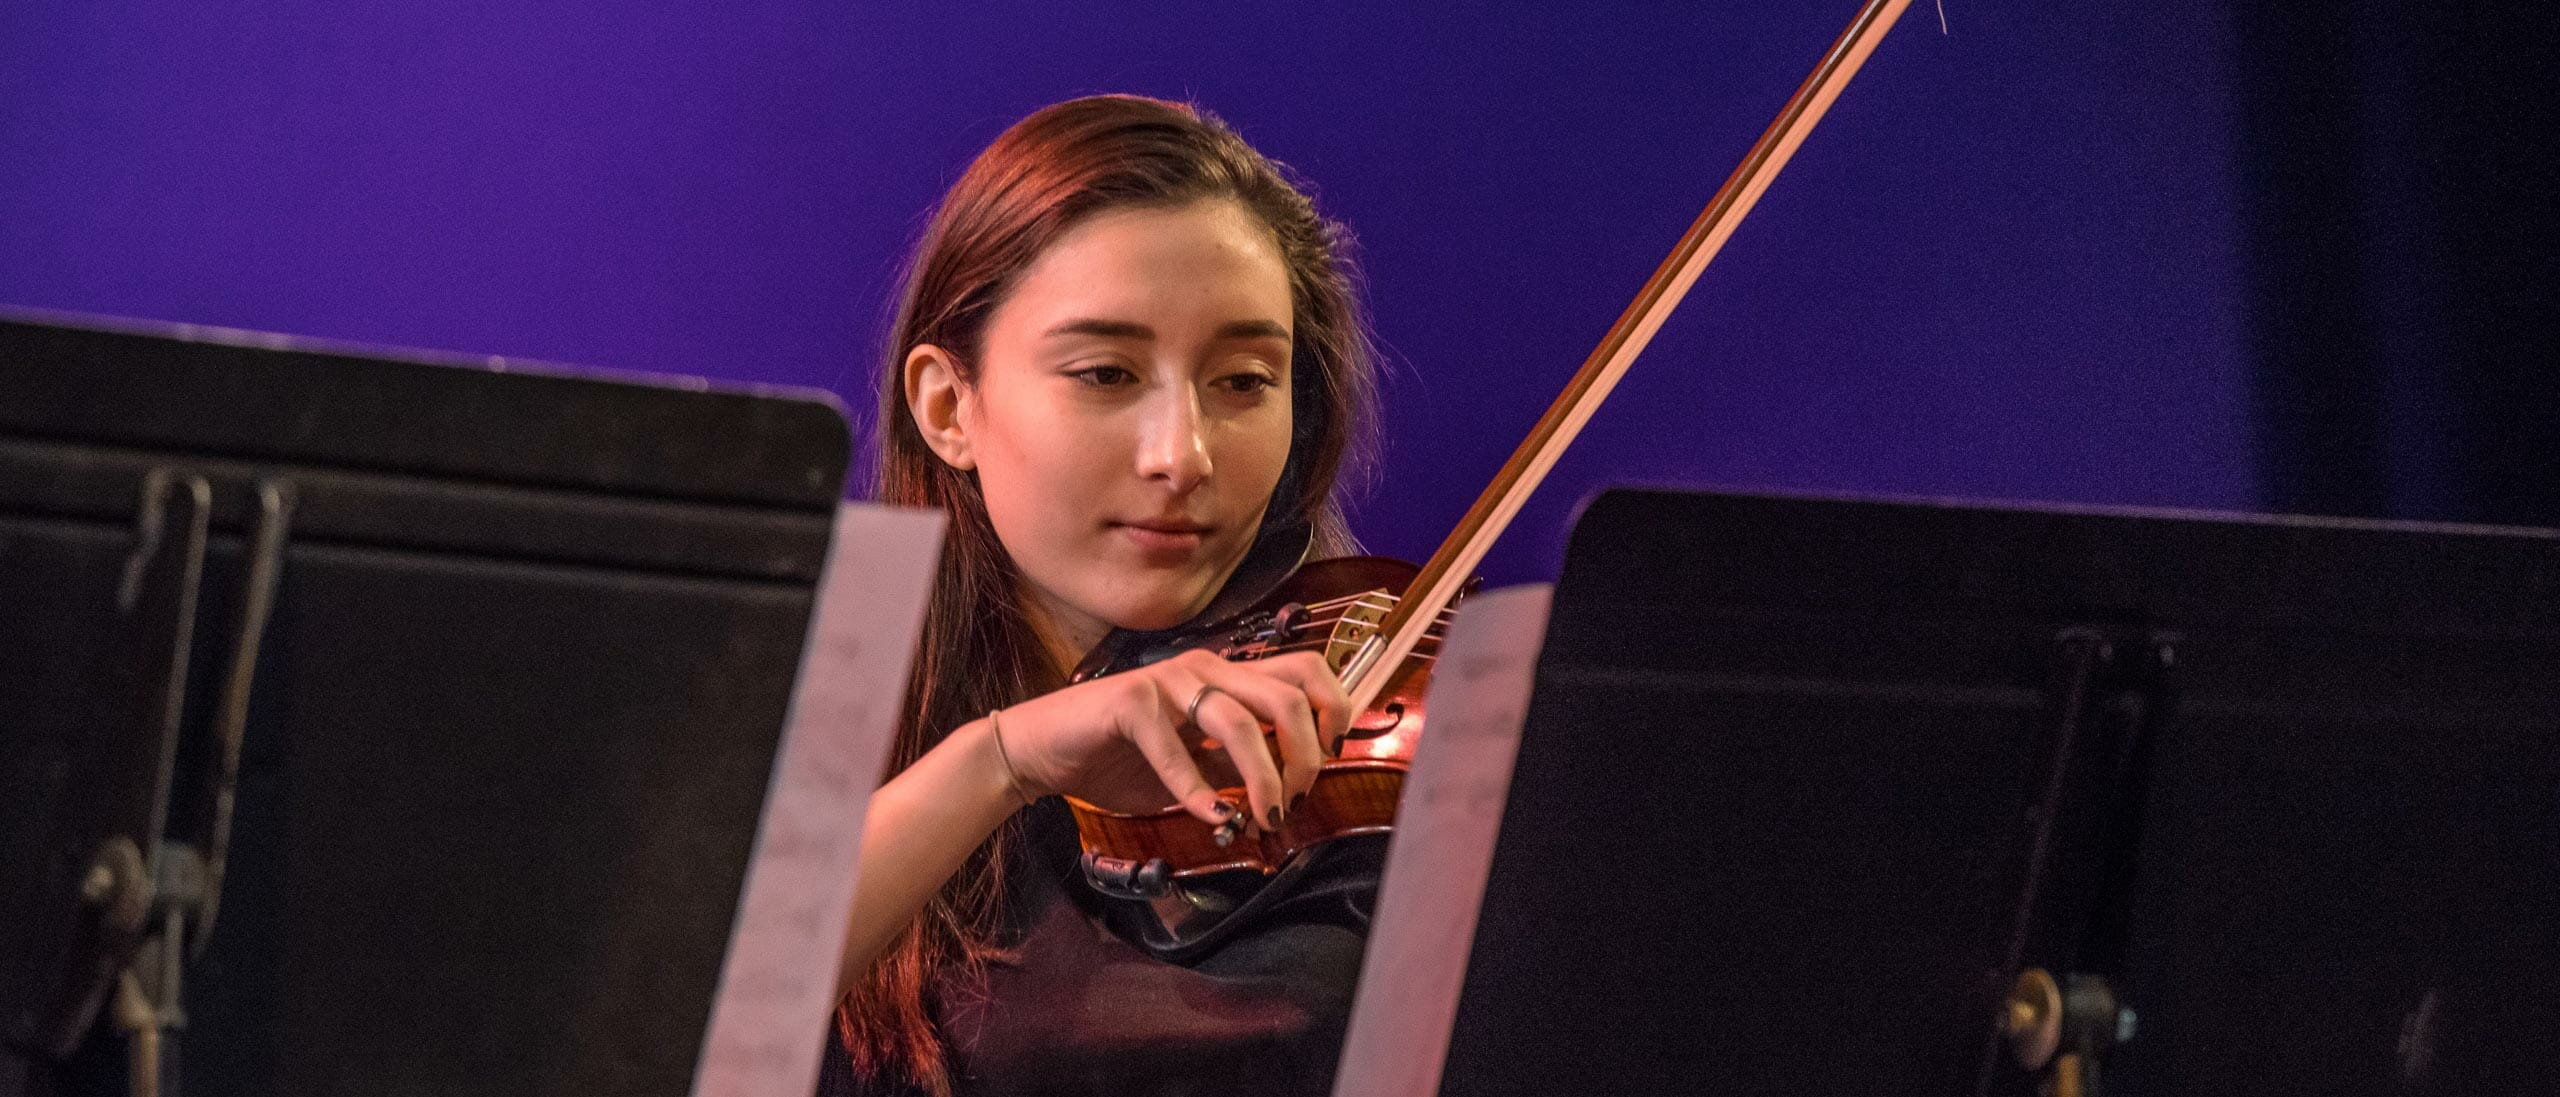 Female student playing the violin on stage